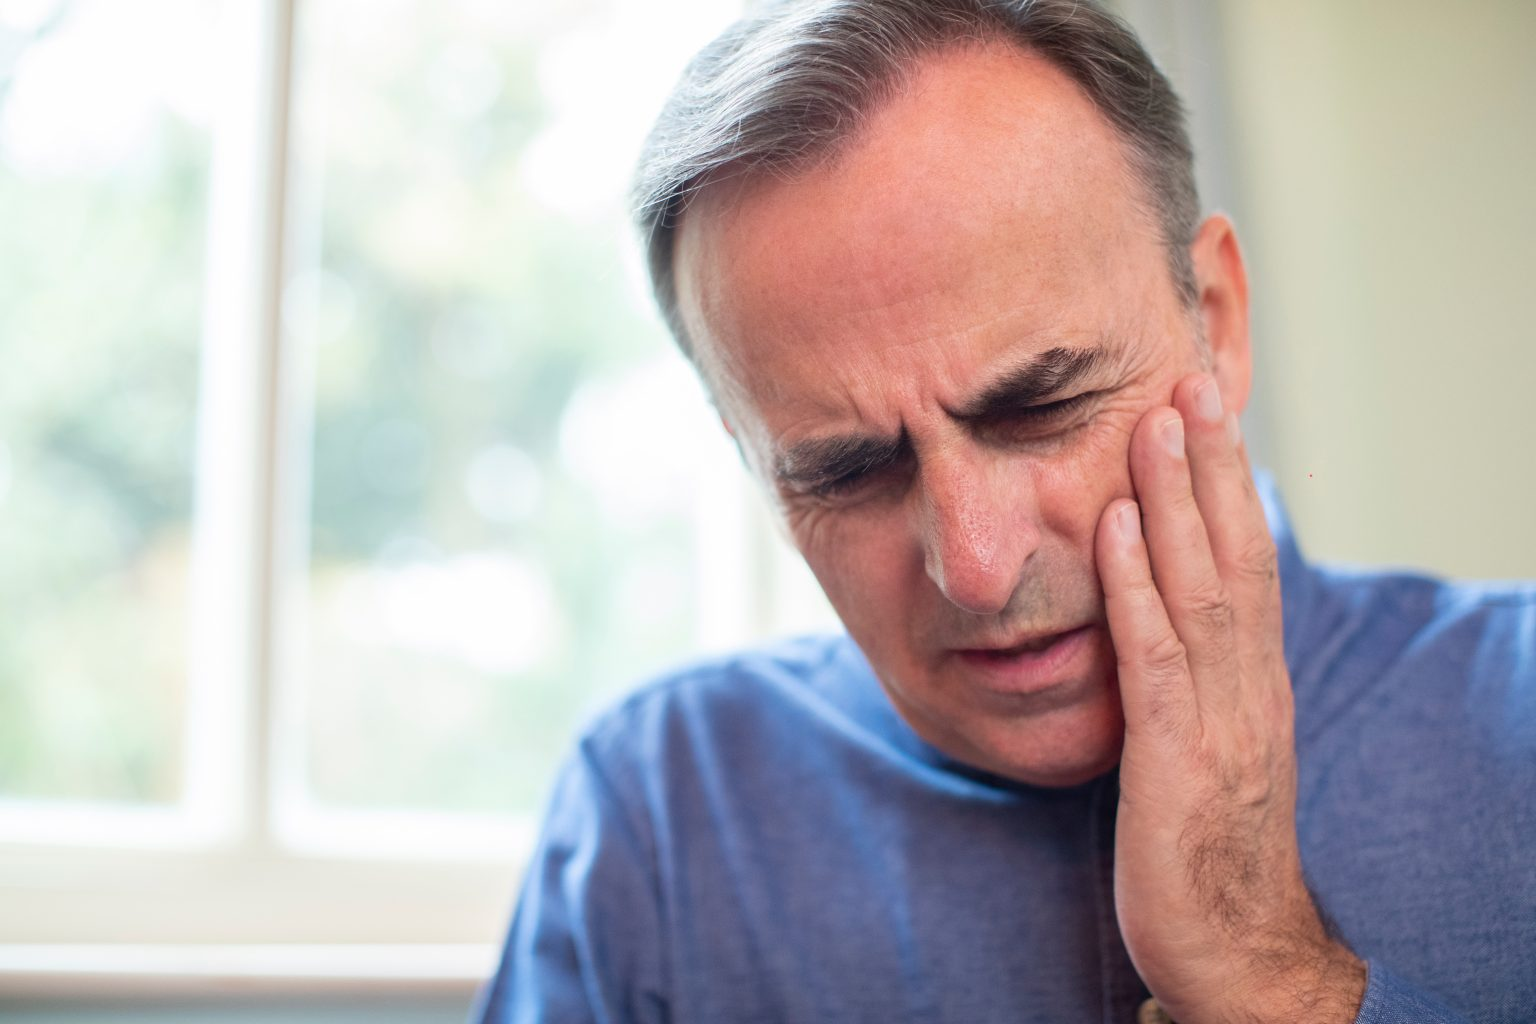 Mature Man Suffering With Toothache And Rubbing Painful Tooth